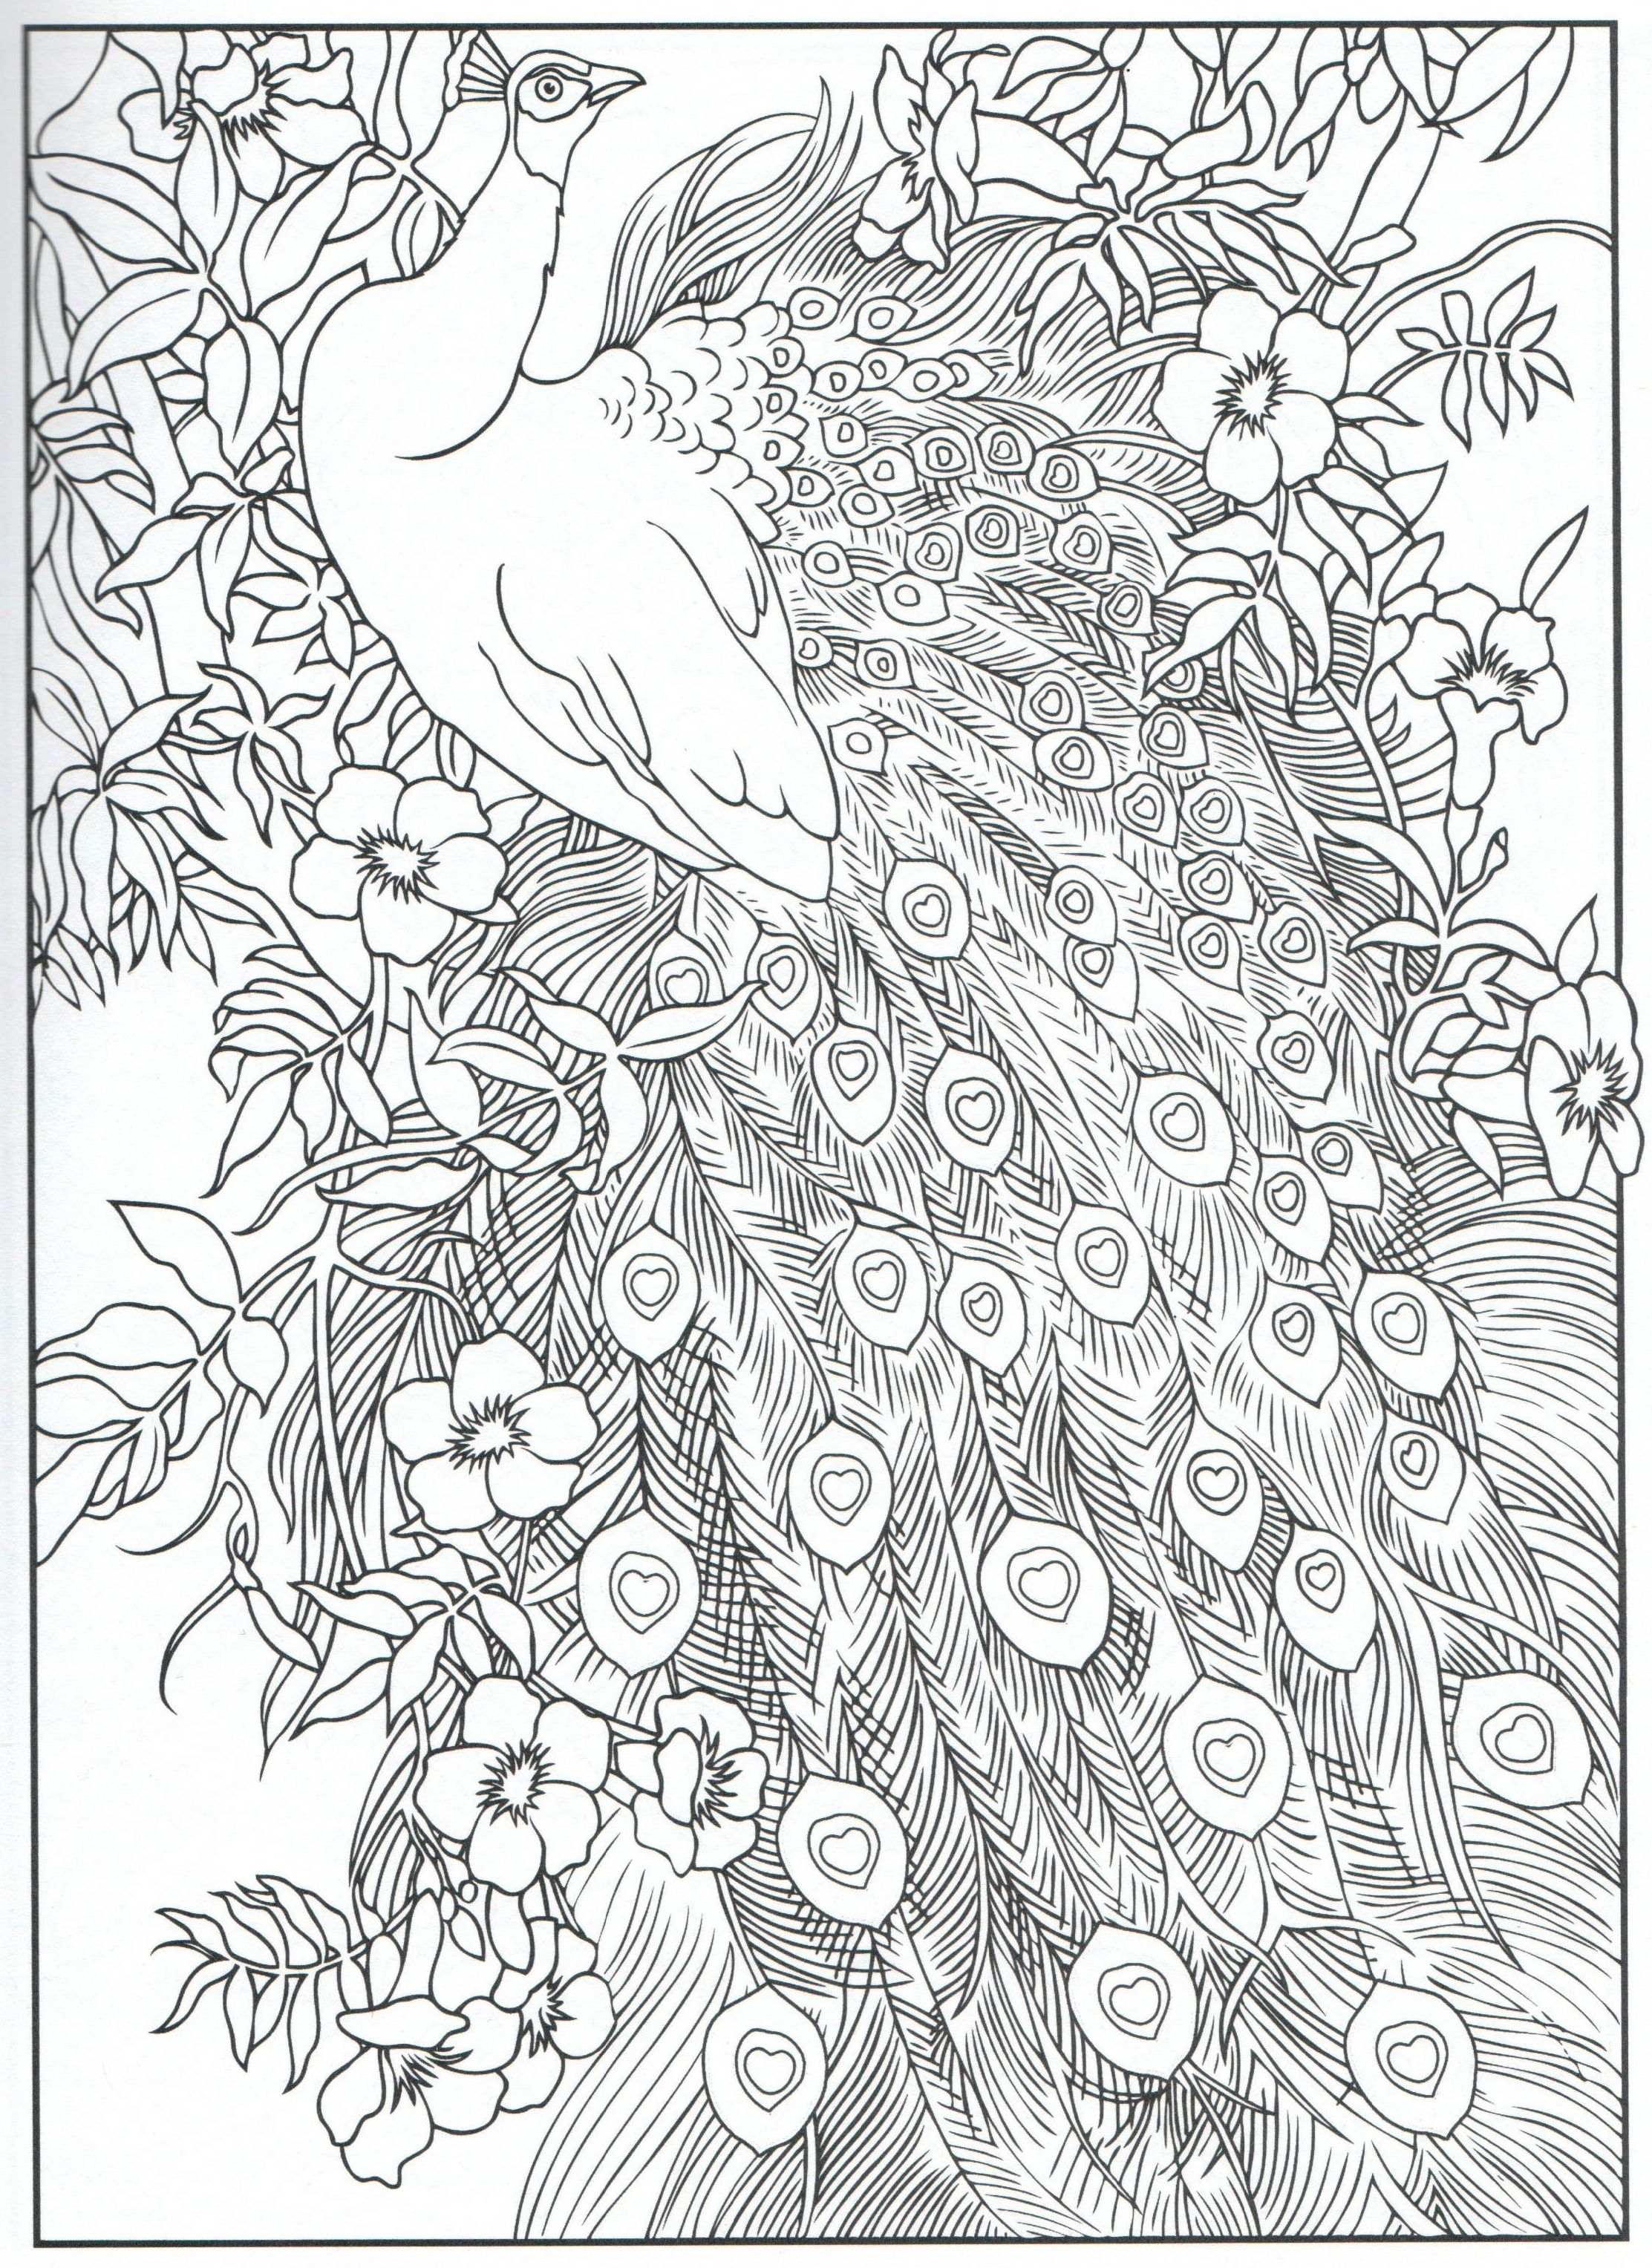 Peacock Feather Coloring pages colouring adult detailed ...Detailed Mandala Coloring Pages For Adults